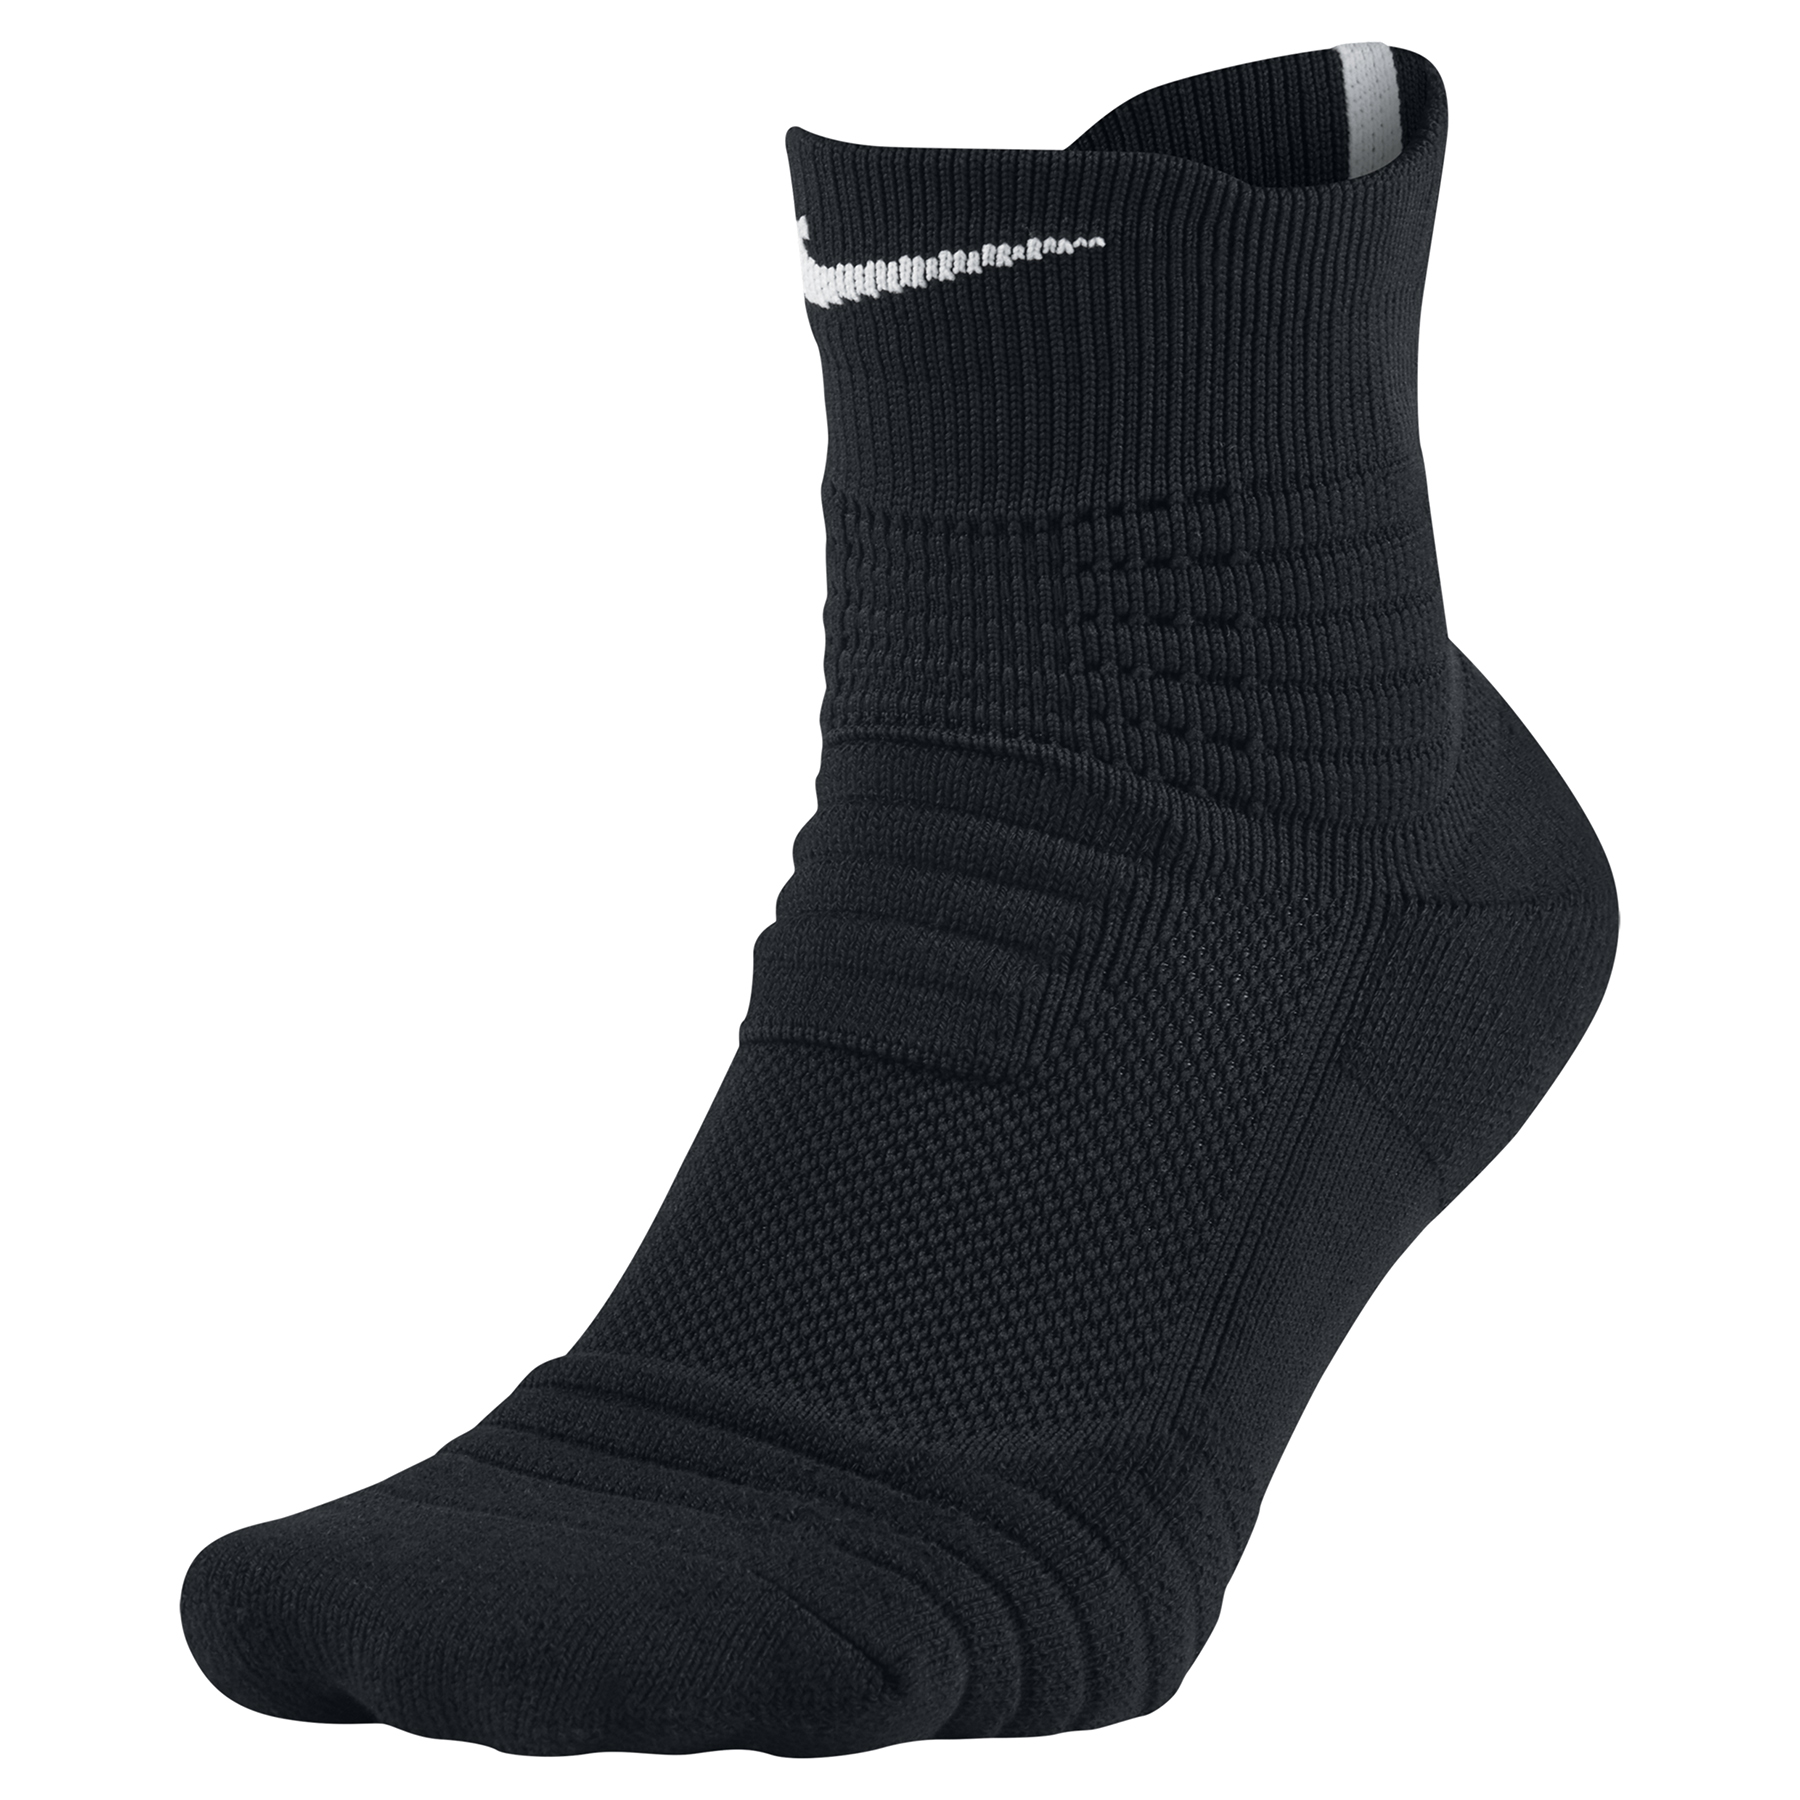 Nike Elite Versatility Mid Basketball Sock - Black/Black